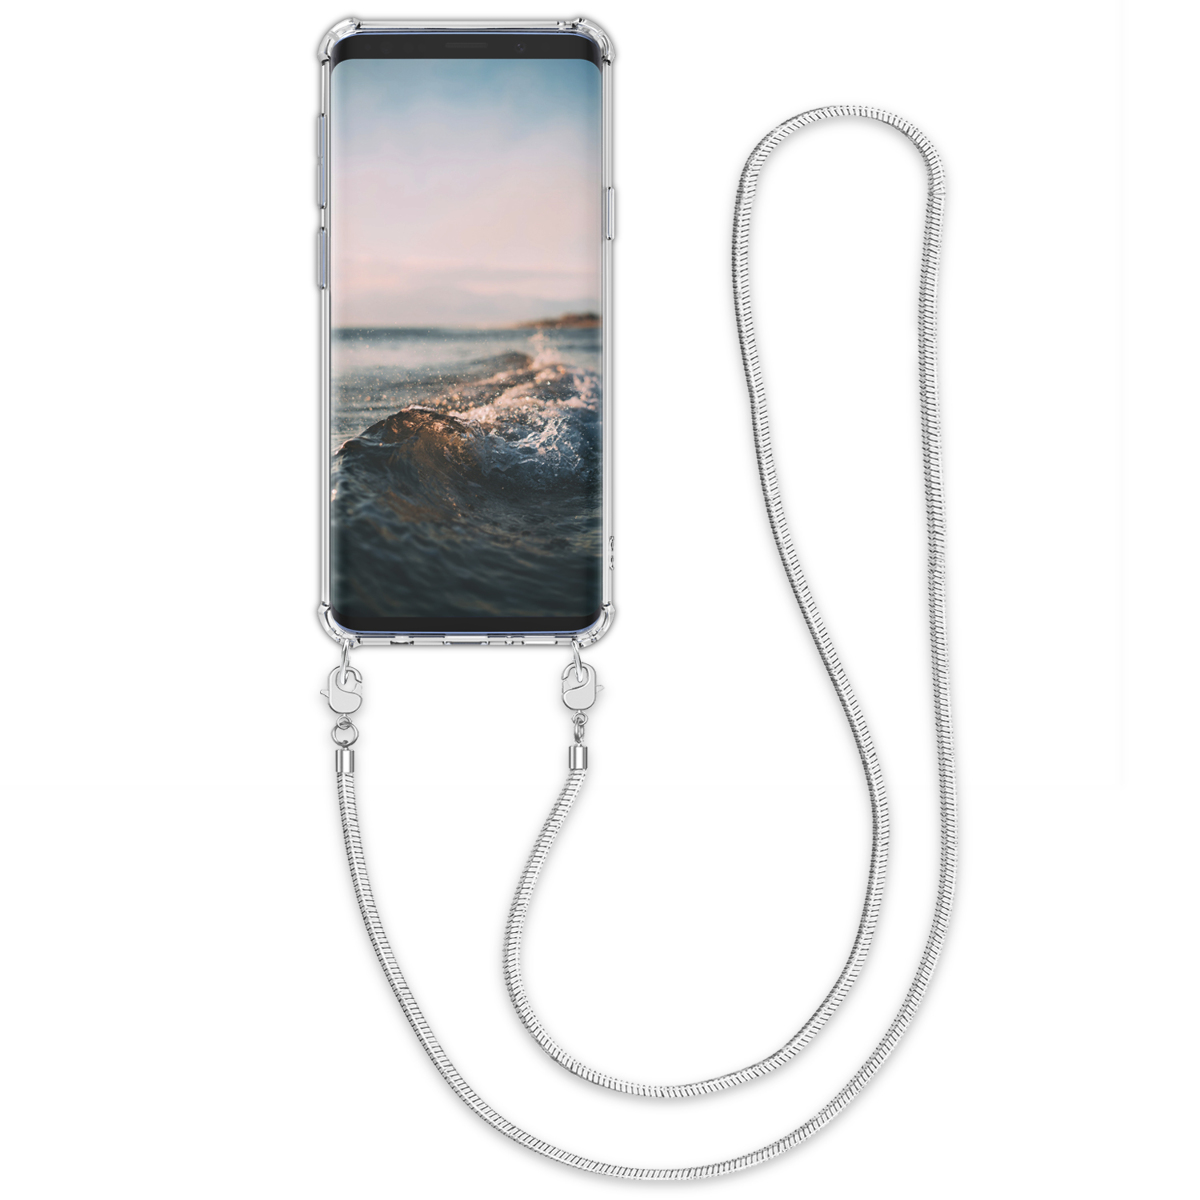 Pouzdro pro Samsung Galaxy S9 - Clear Transparent TPU Phone Cover Holder with Metal Chain Strap - Transparent / Silver